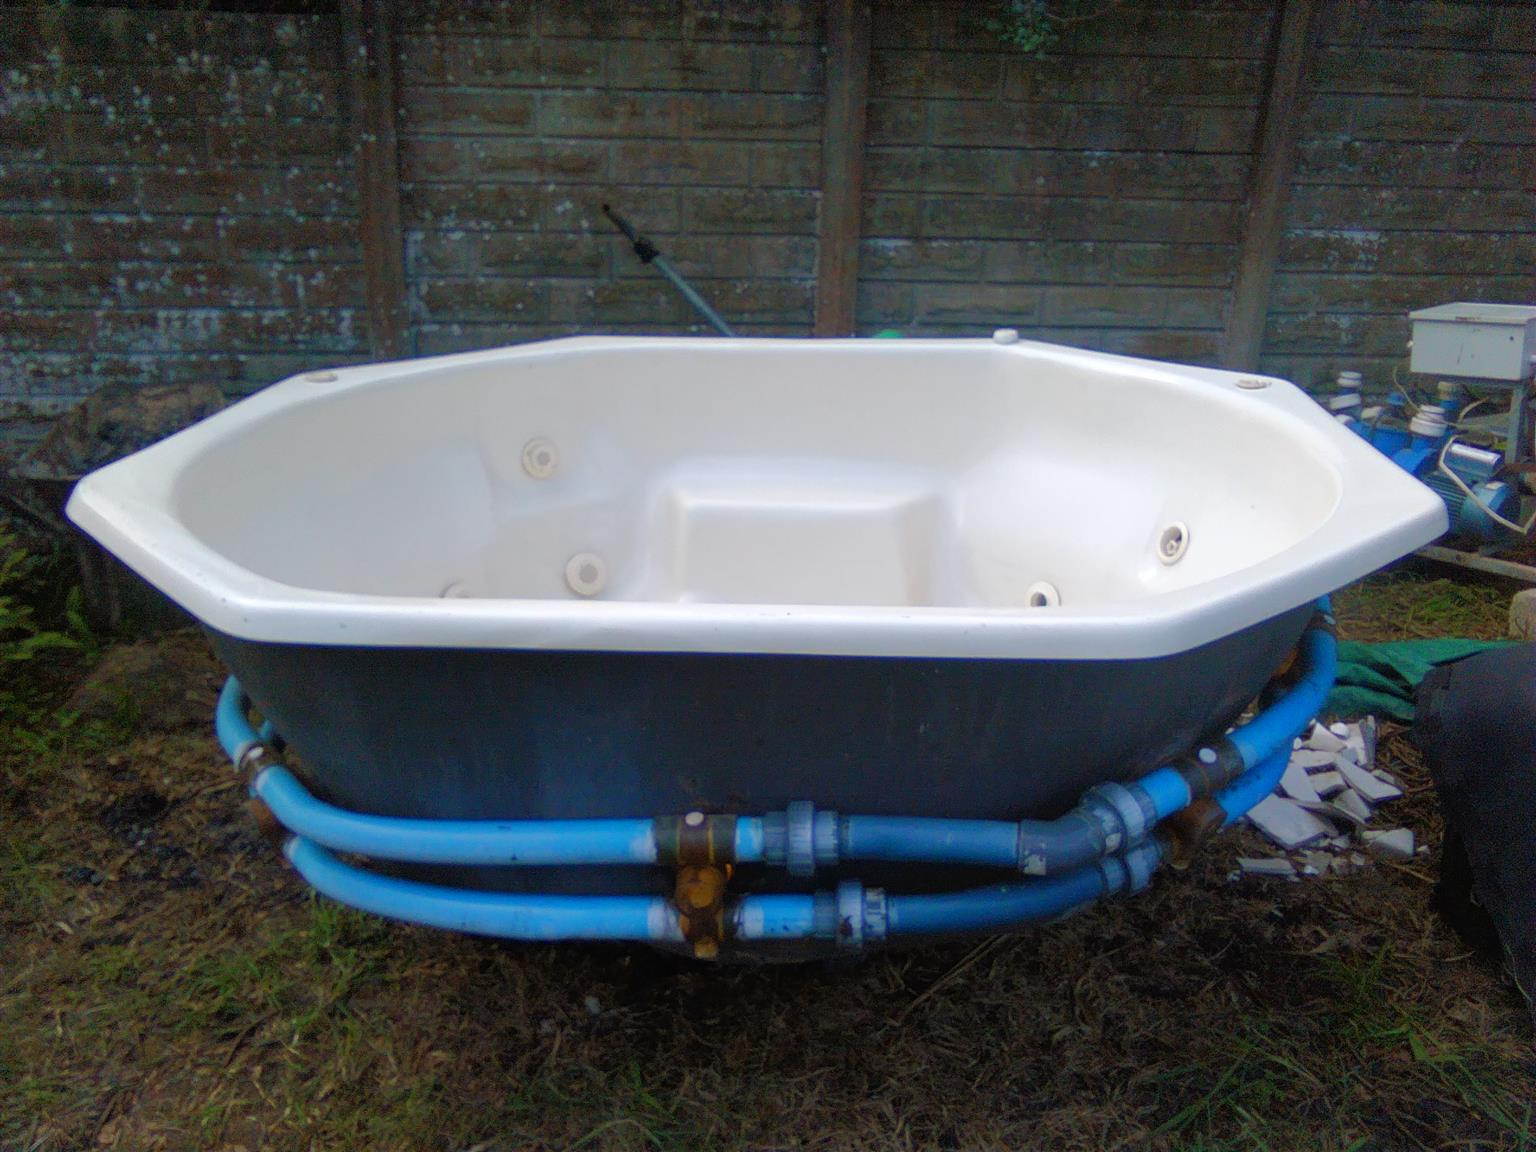 Jacuzzi Whirlpool Whirlpool Jacuzzi 6 Seater Junk Mail